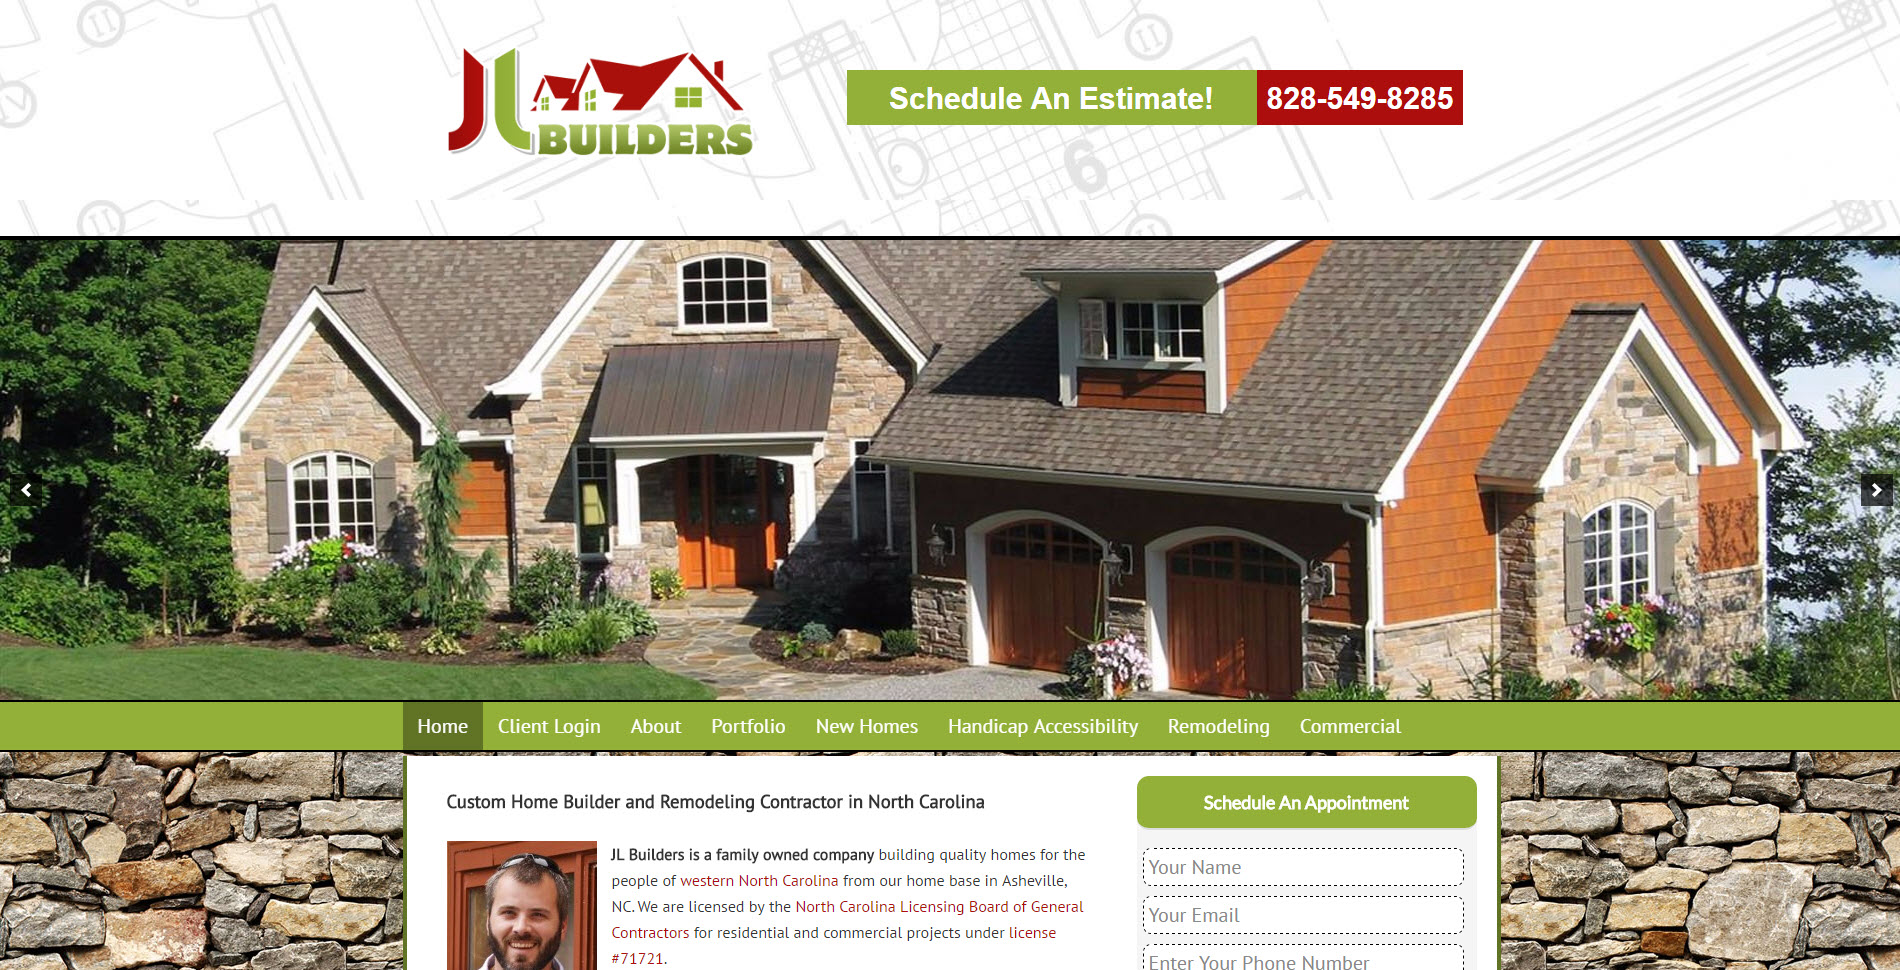 Website design for remodelers plumbers painters and roofers for Home builder contracts